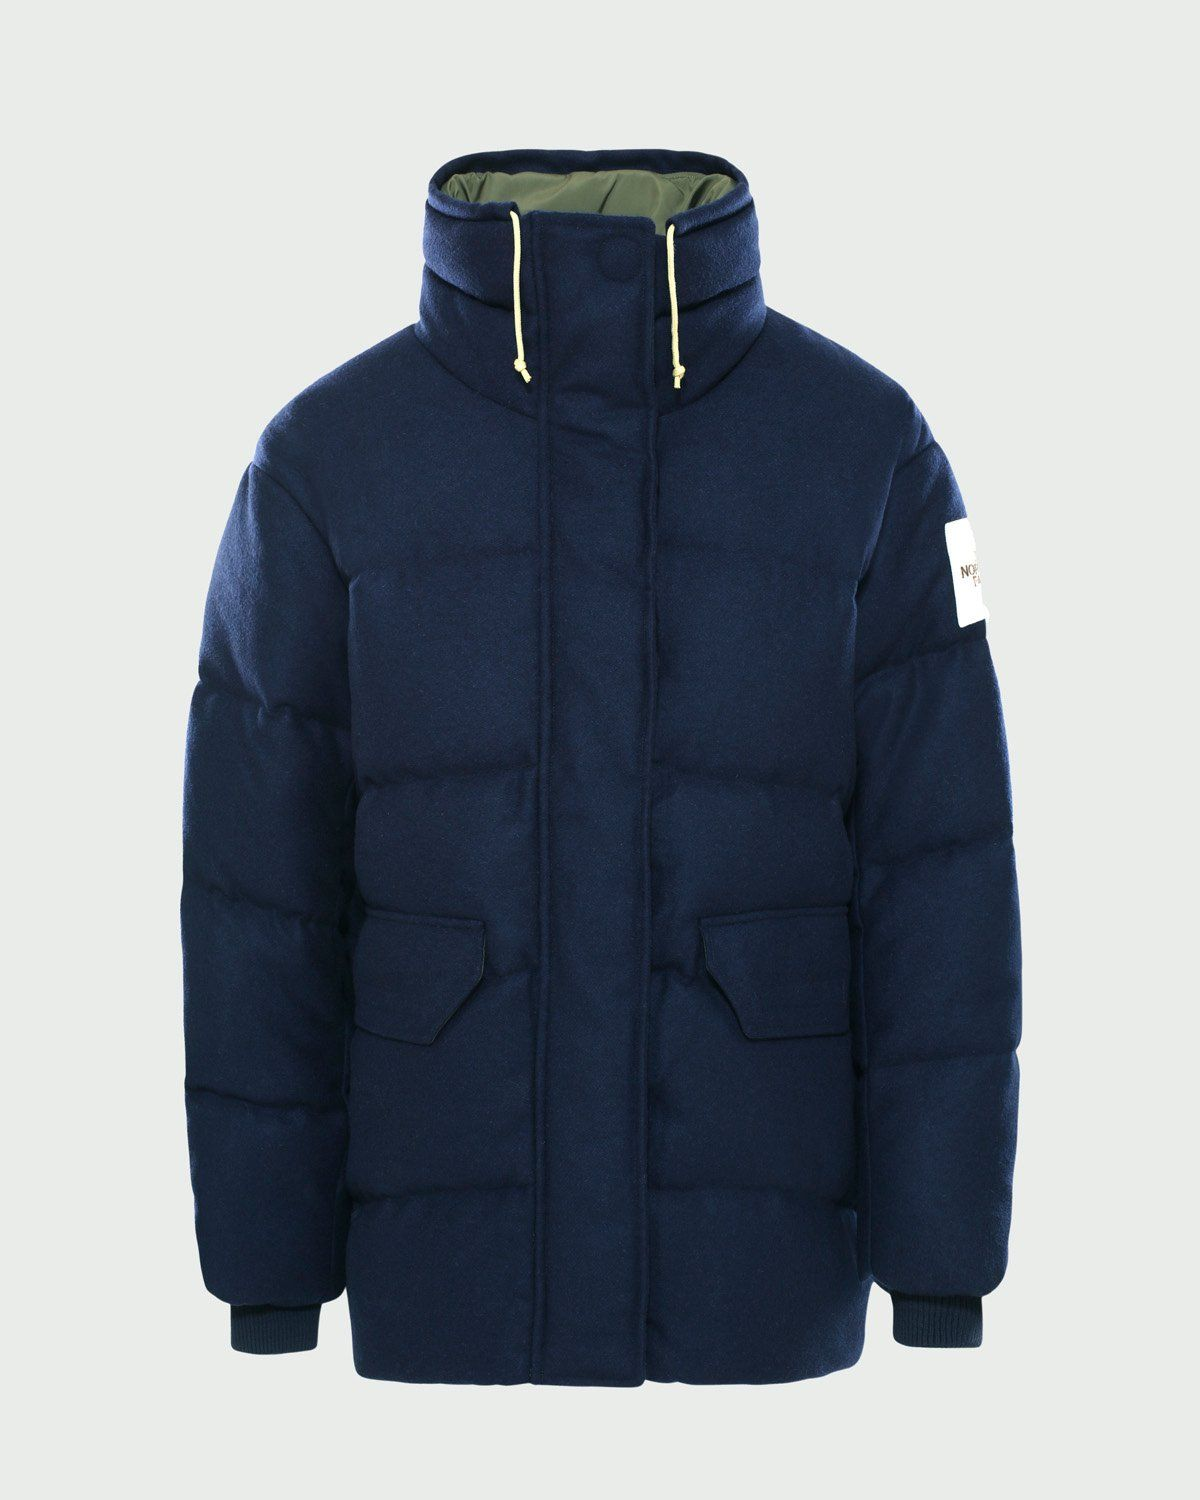 The North Face Brown Label - Larkspur Wool Down Jacket Navy Women - Image 1